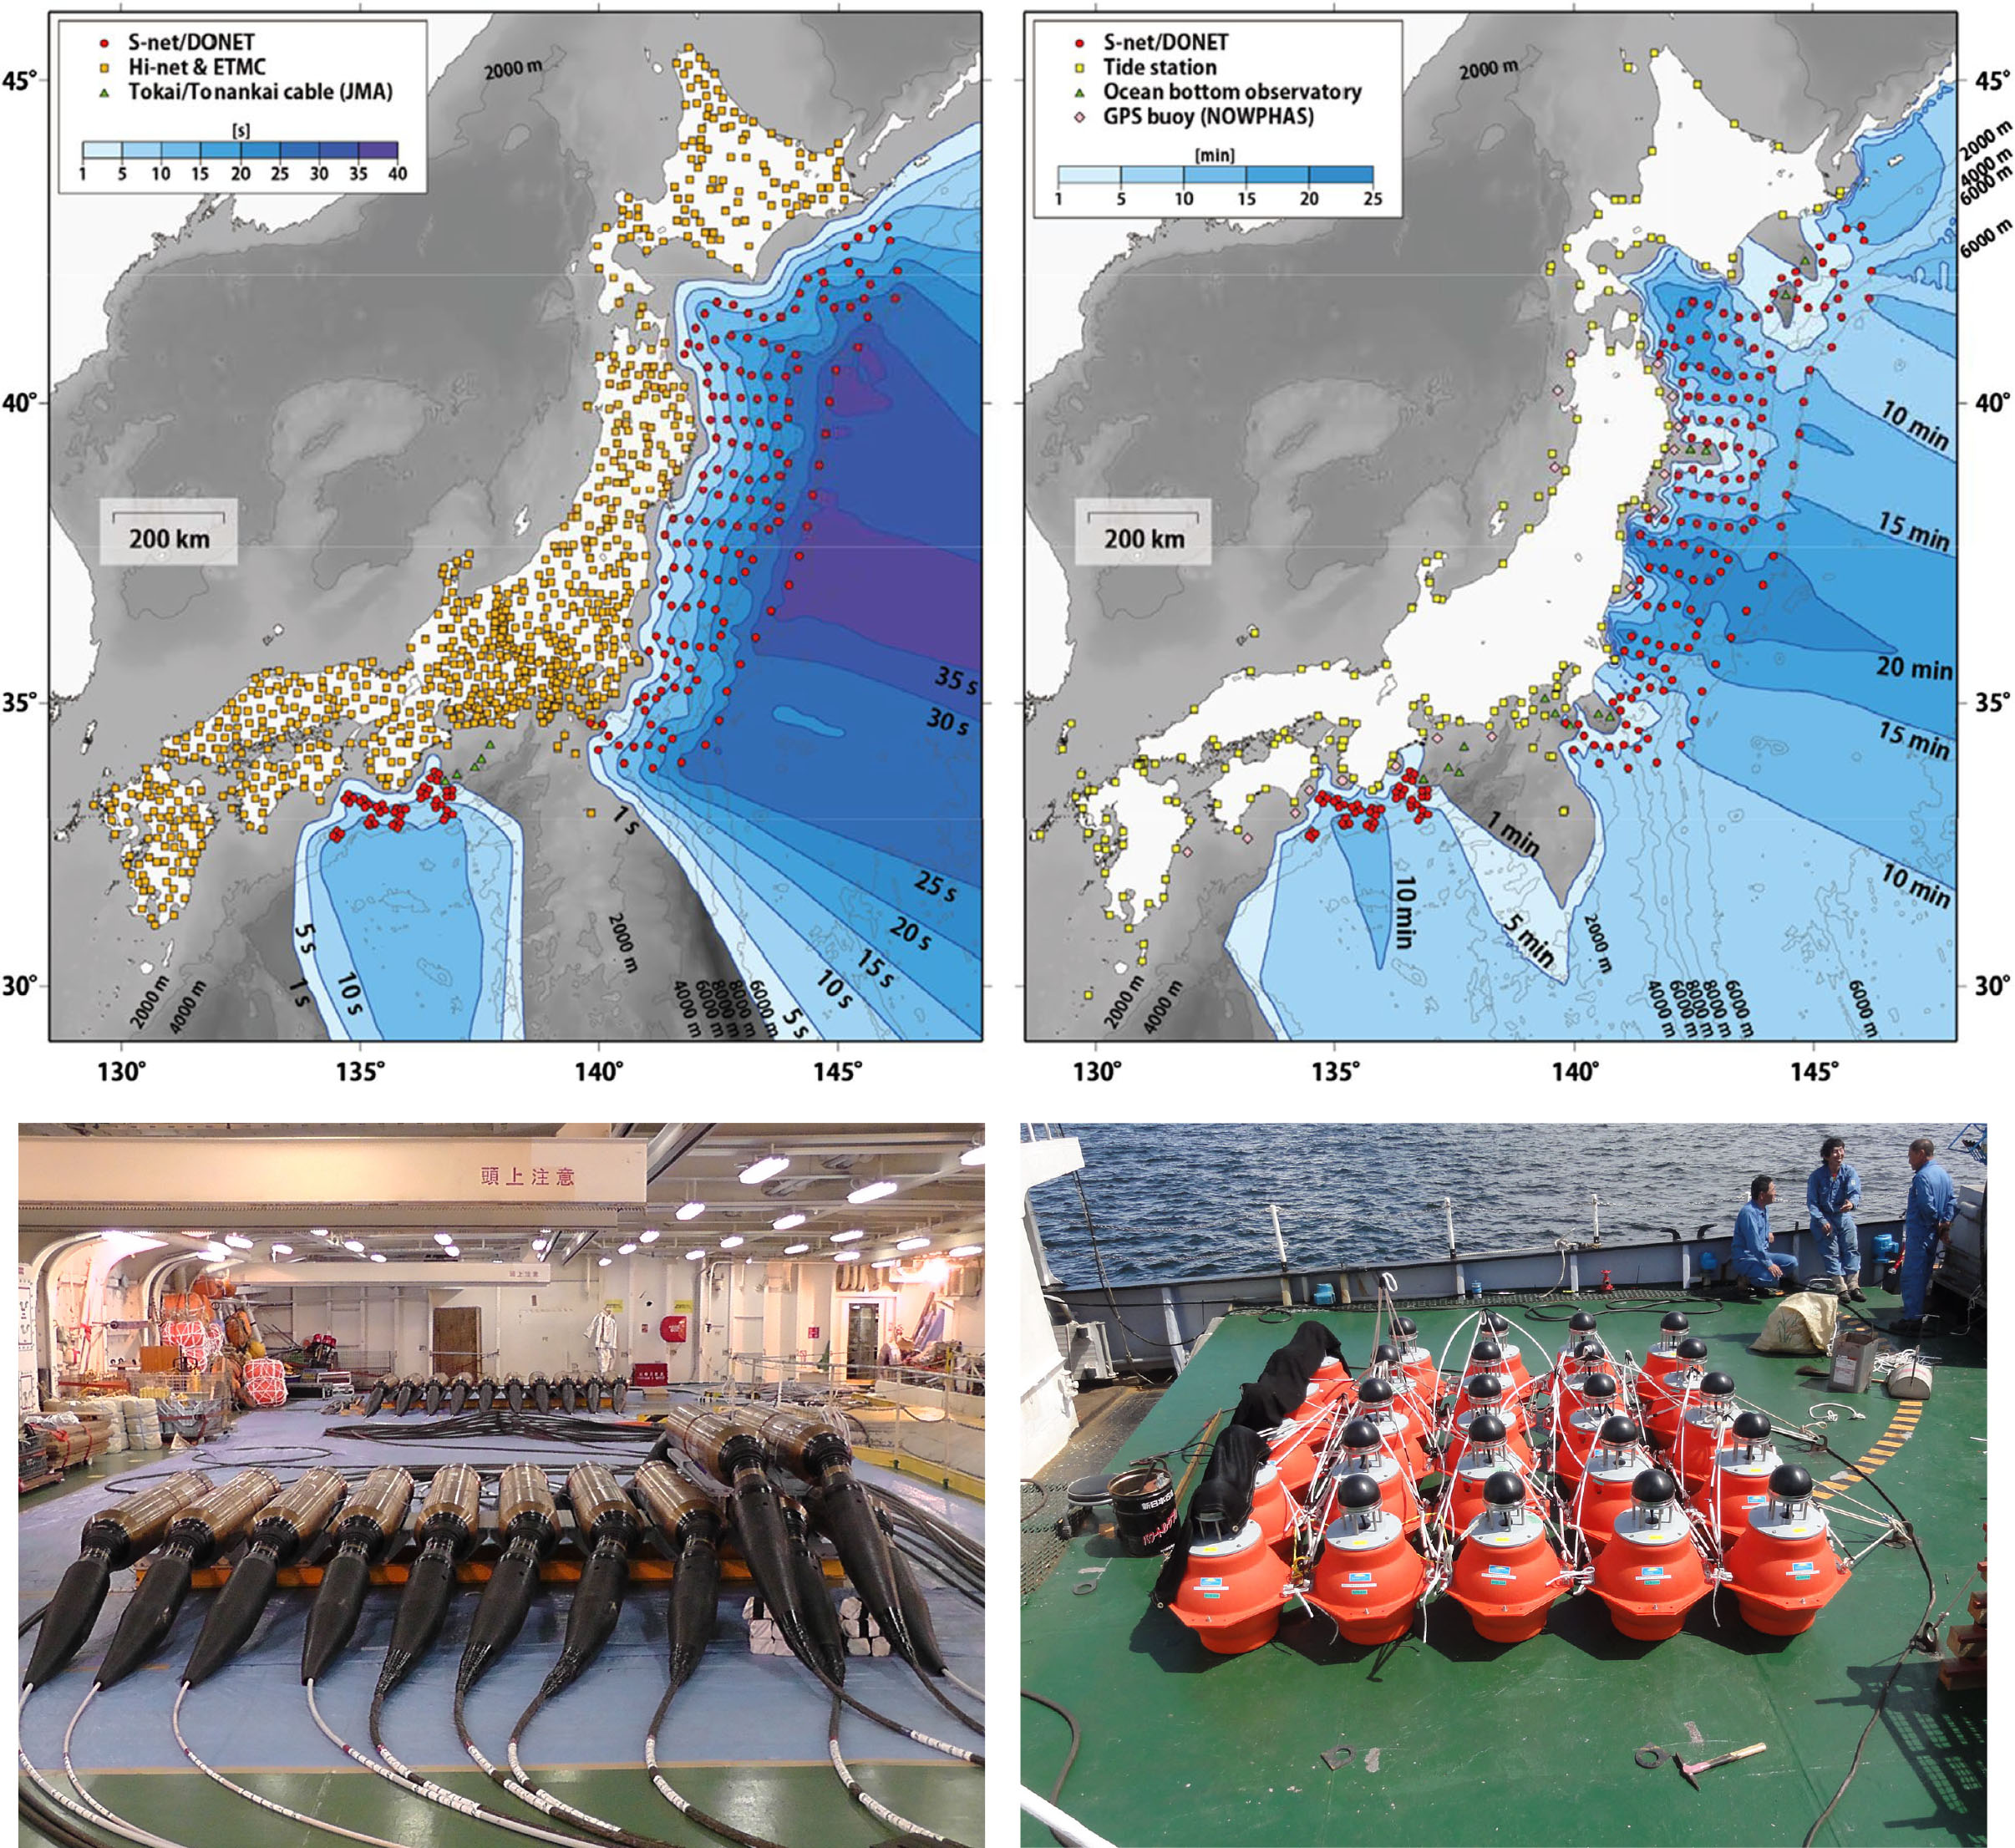 Images of new offshore seismic and geodetic observation system models (top). Photographs of sensors for measuring seismic activity (bottom).